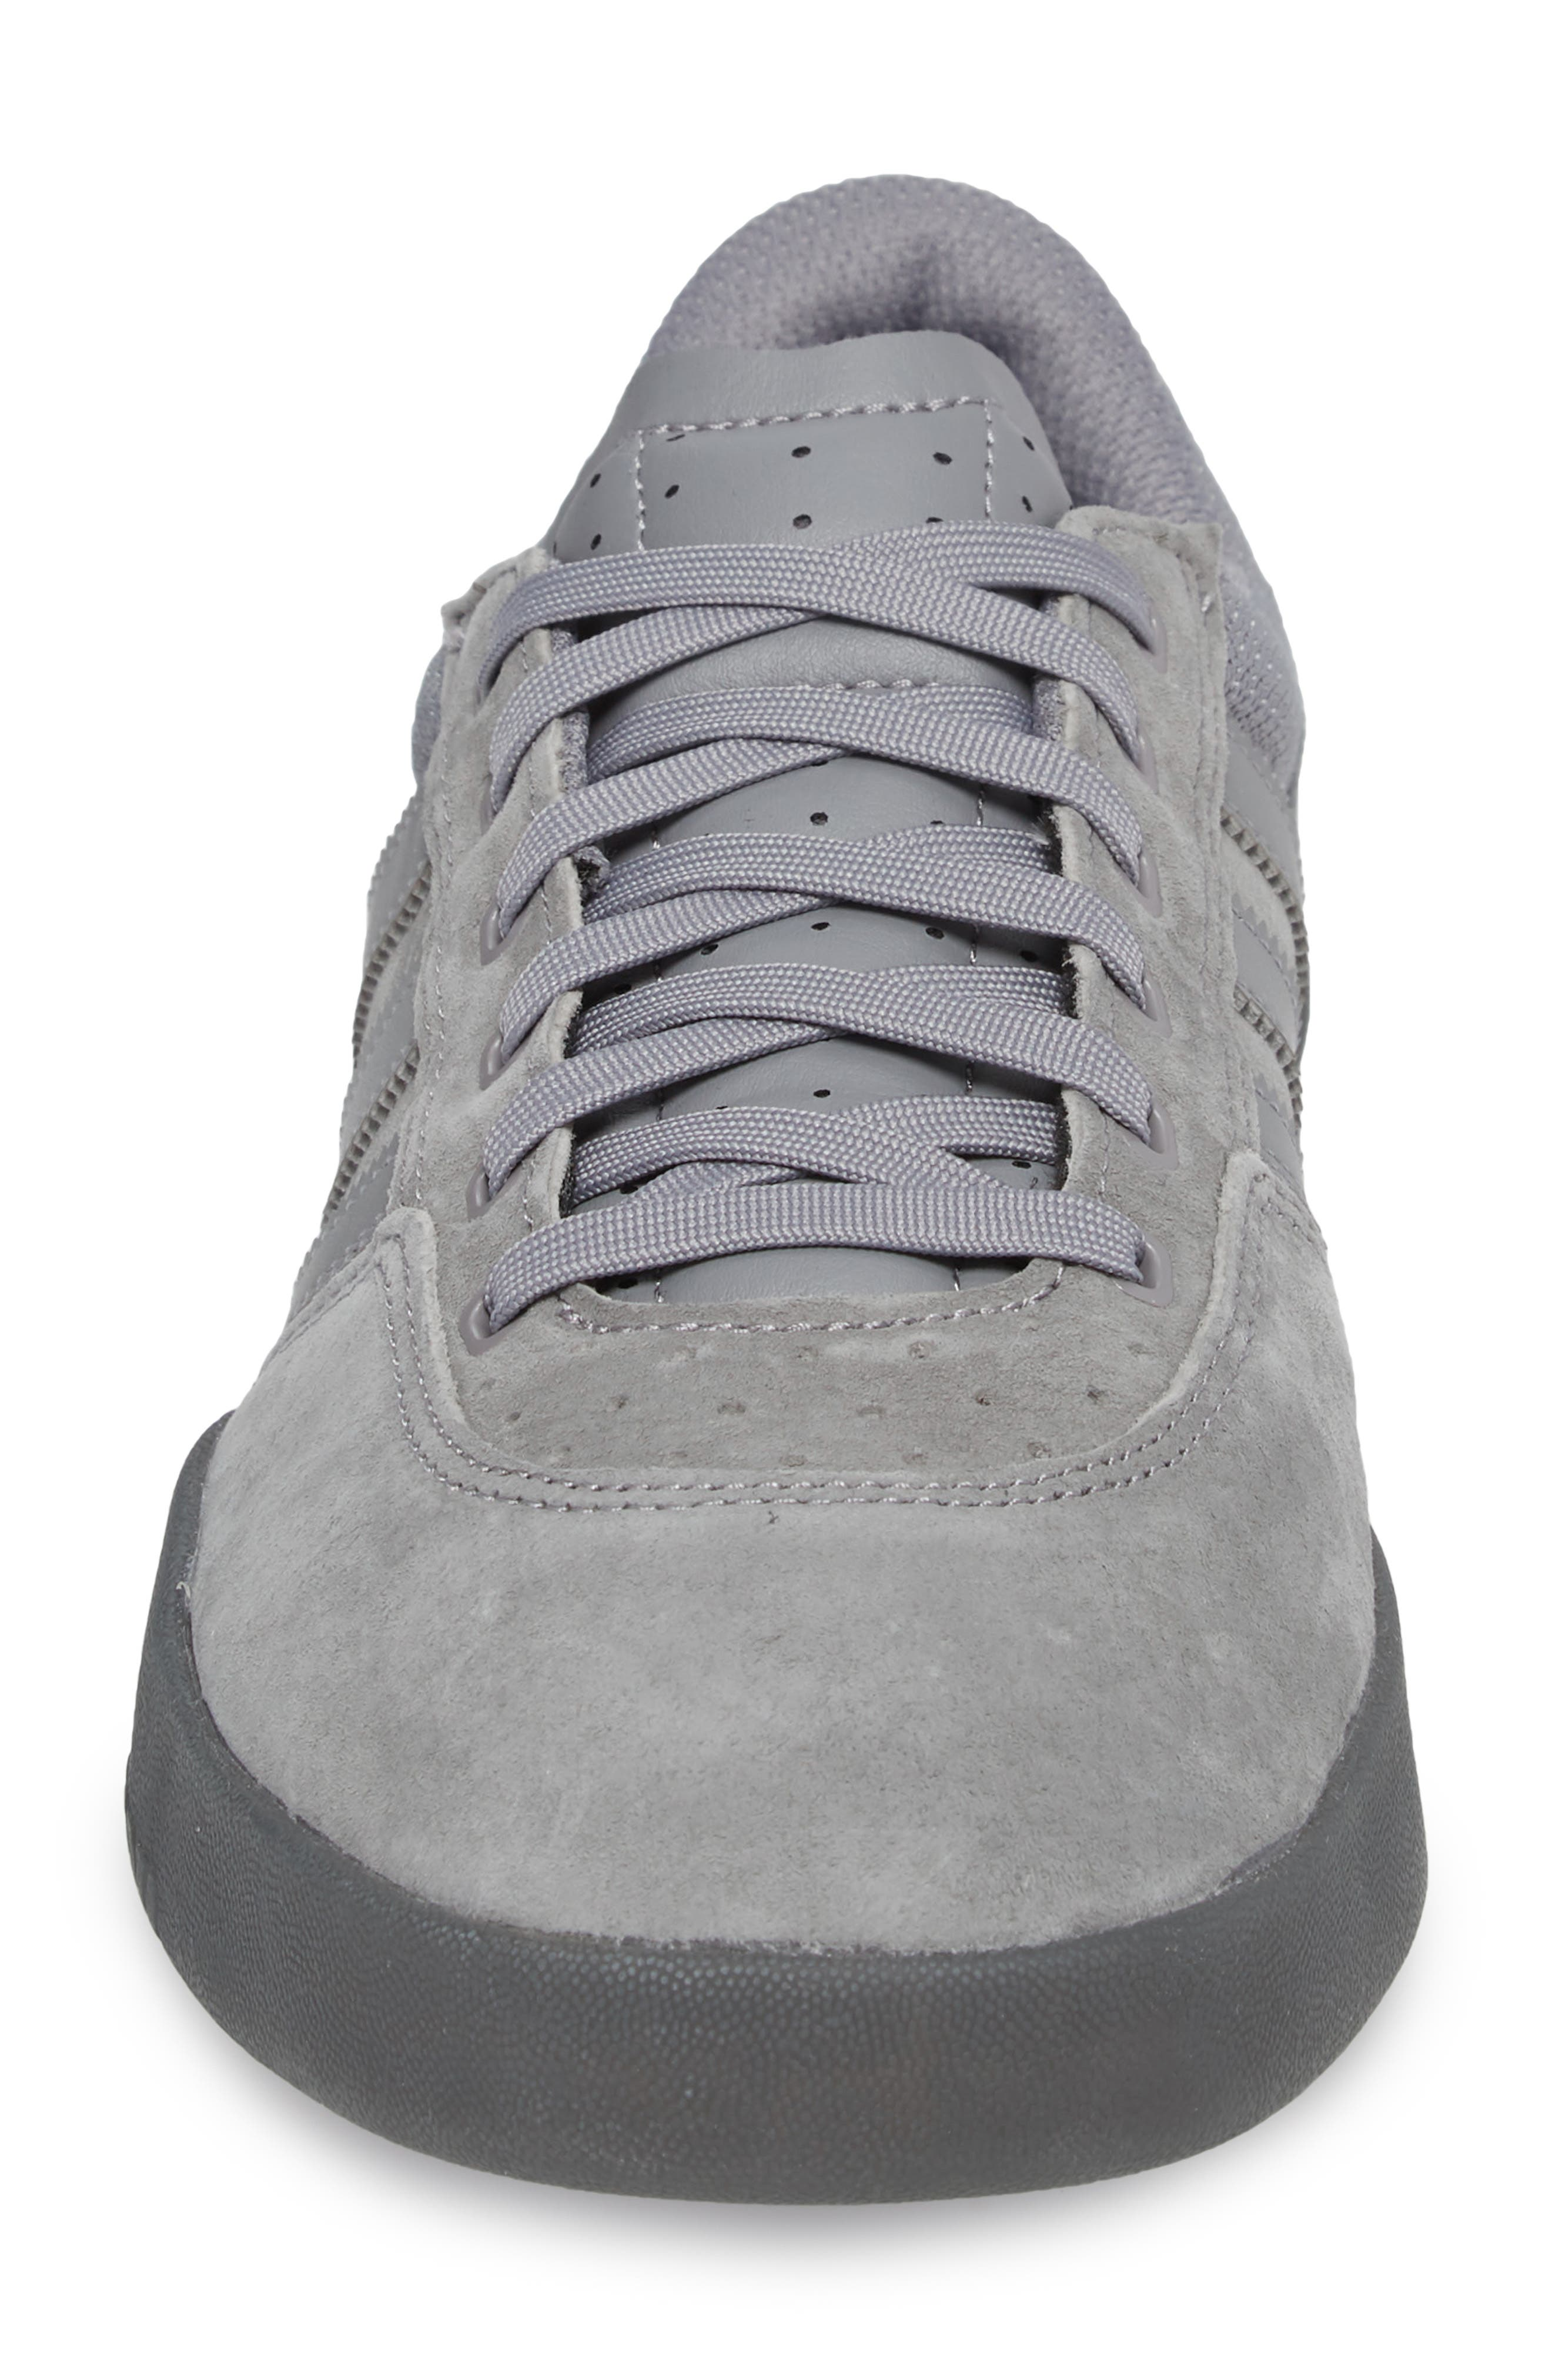 City Cup Sneaker,                             Alternate thumbnail 4, color,                             Grey/ Gold